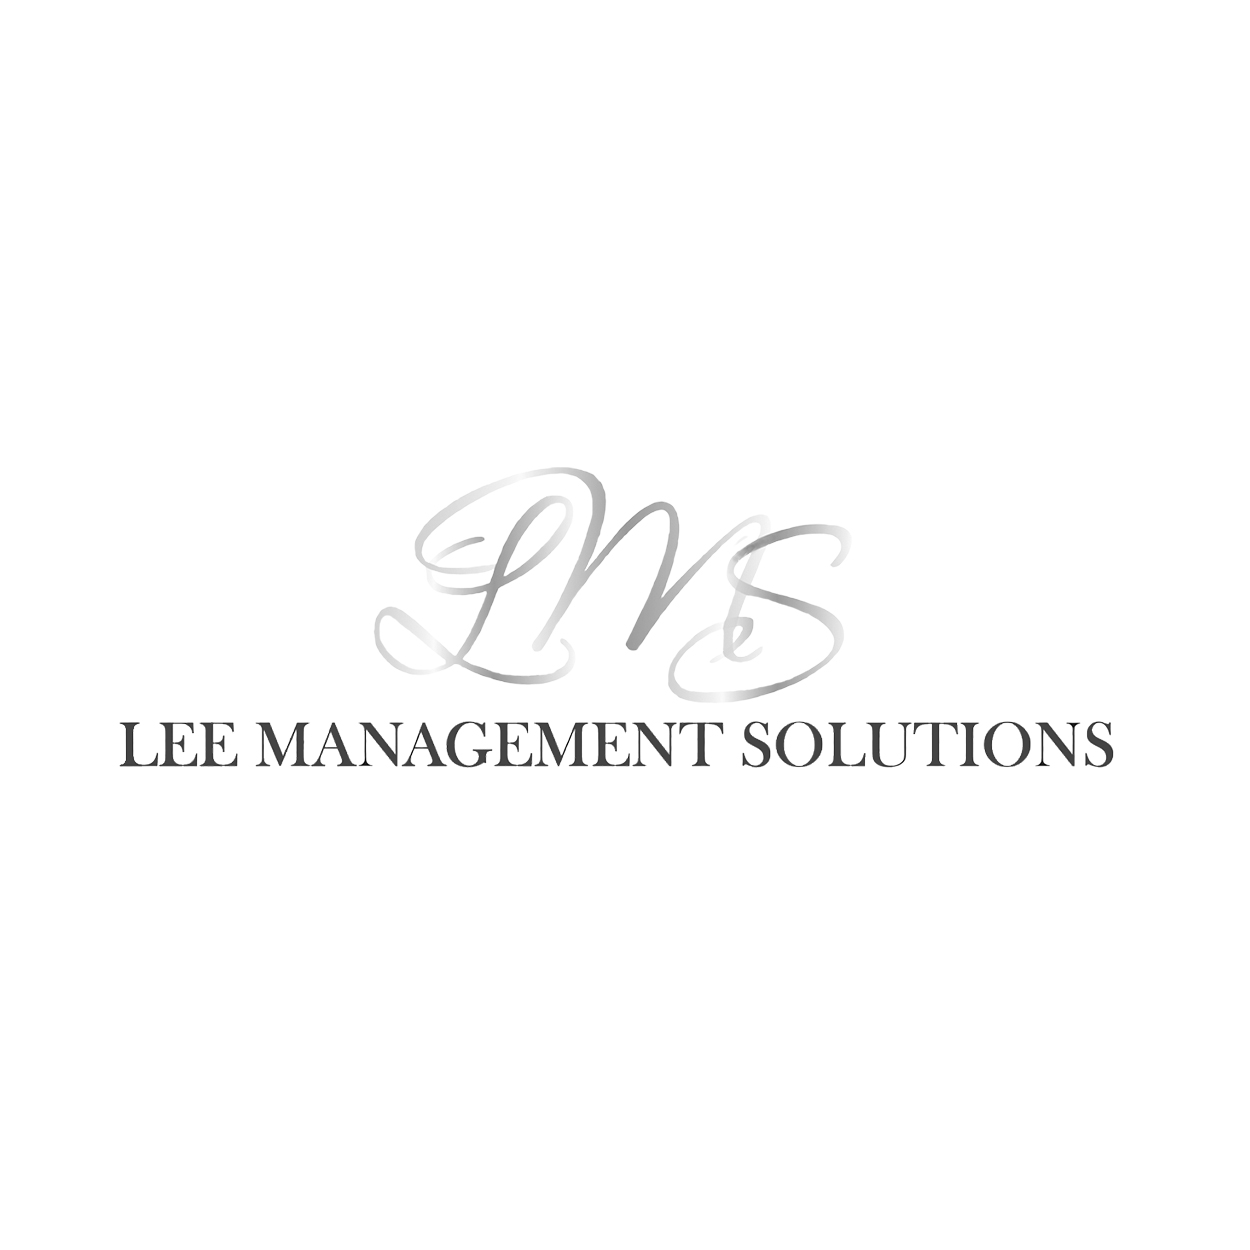 Lee Management Solutions logo